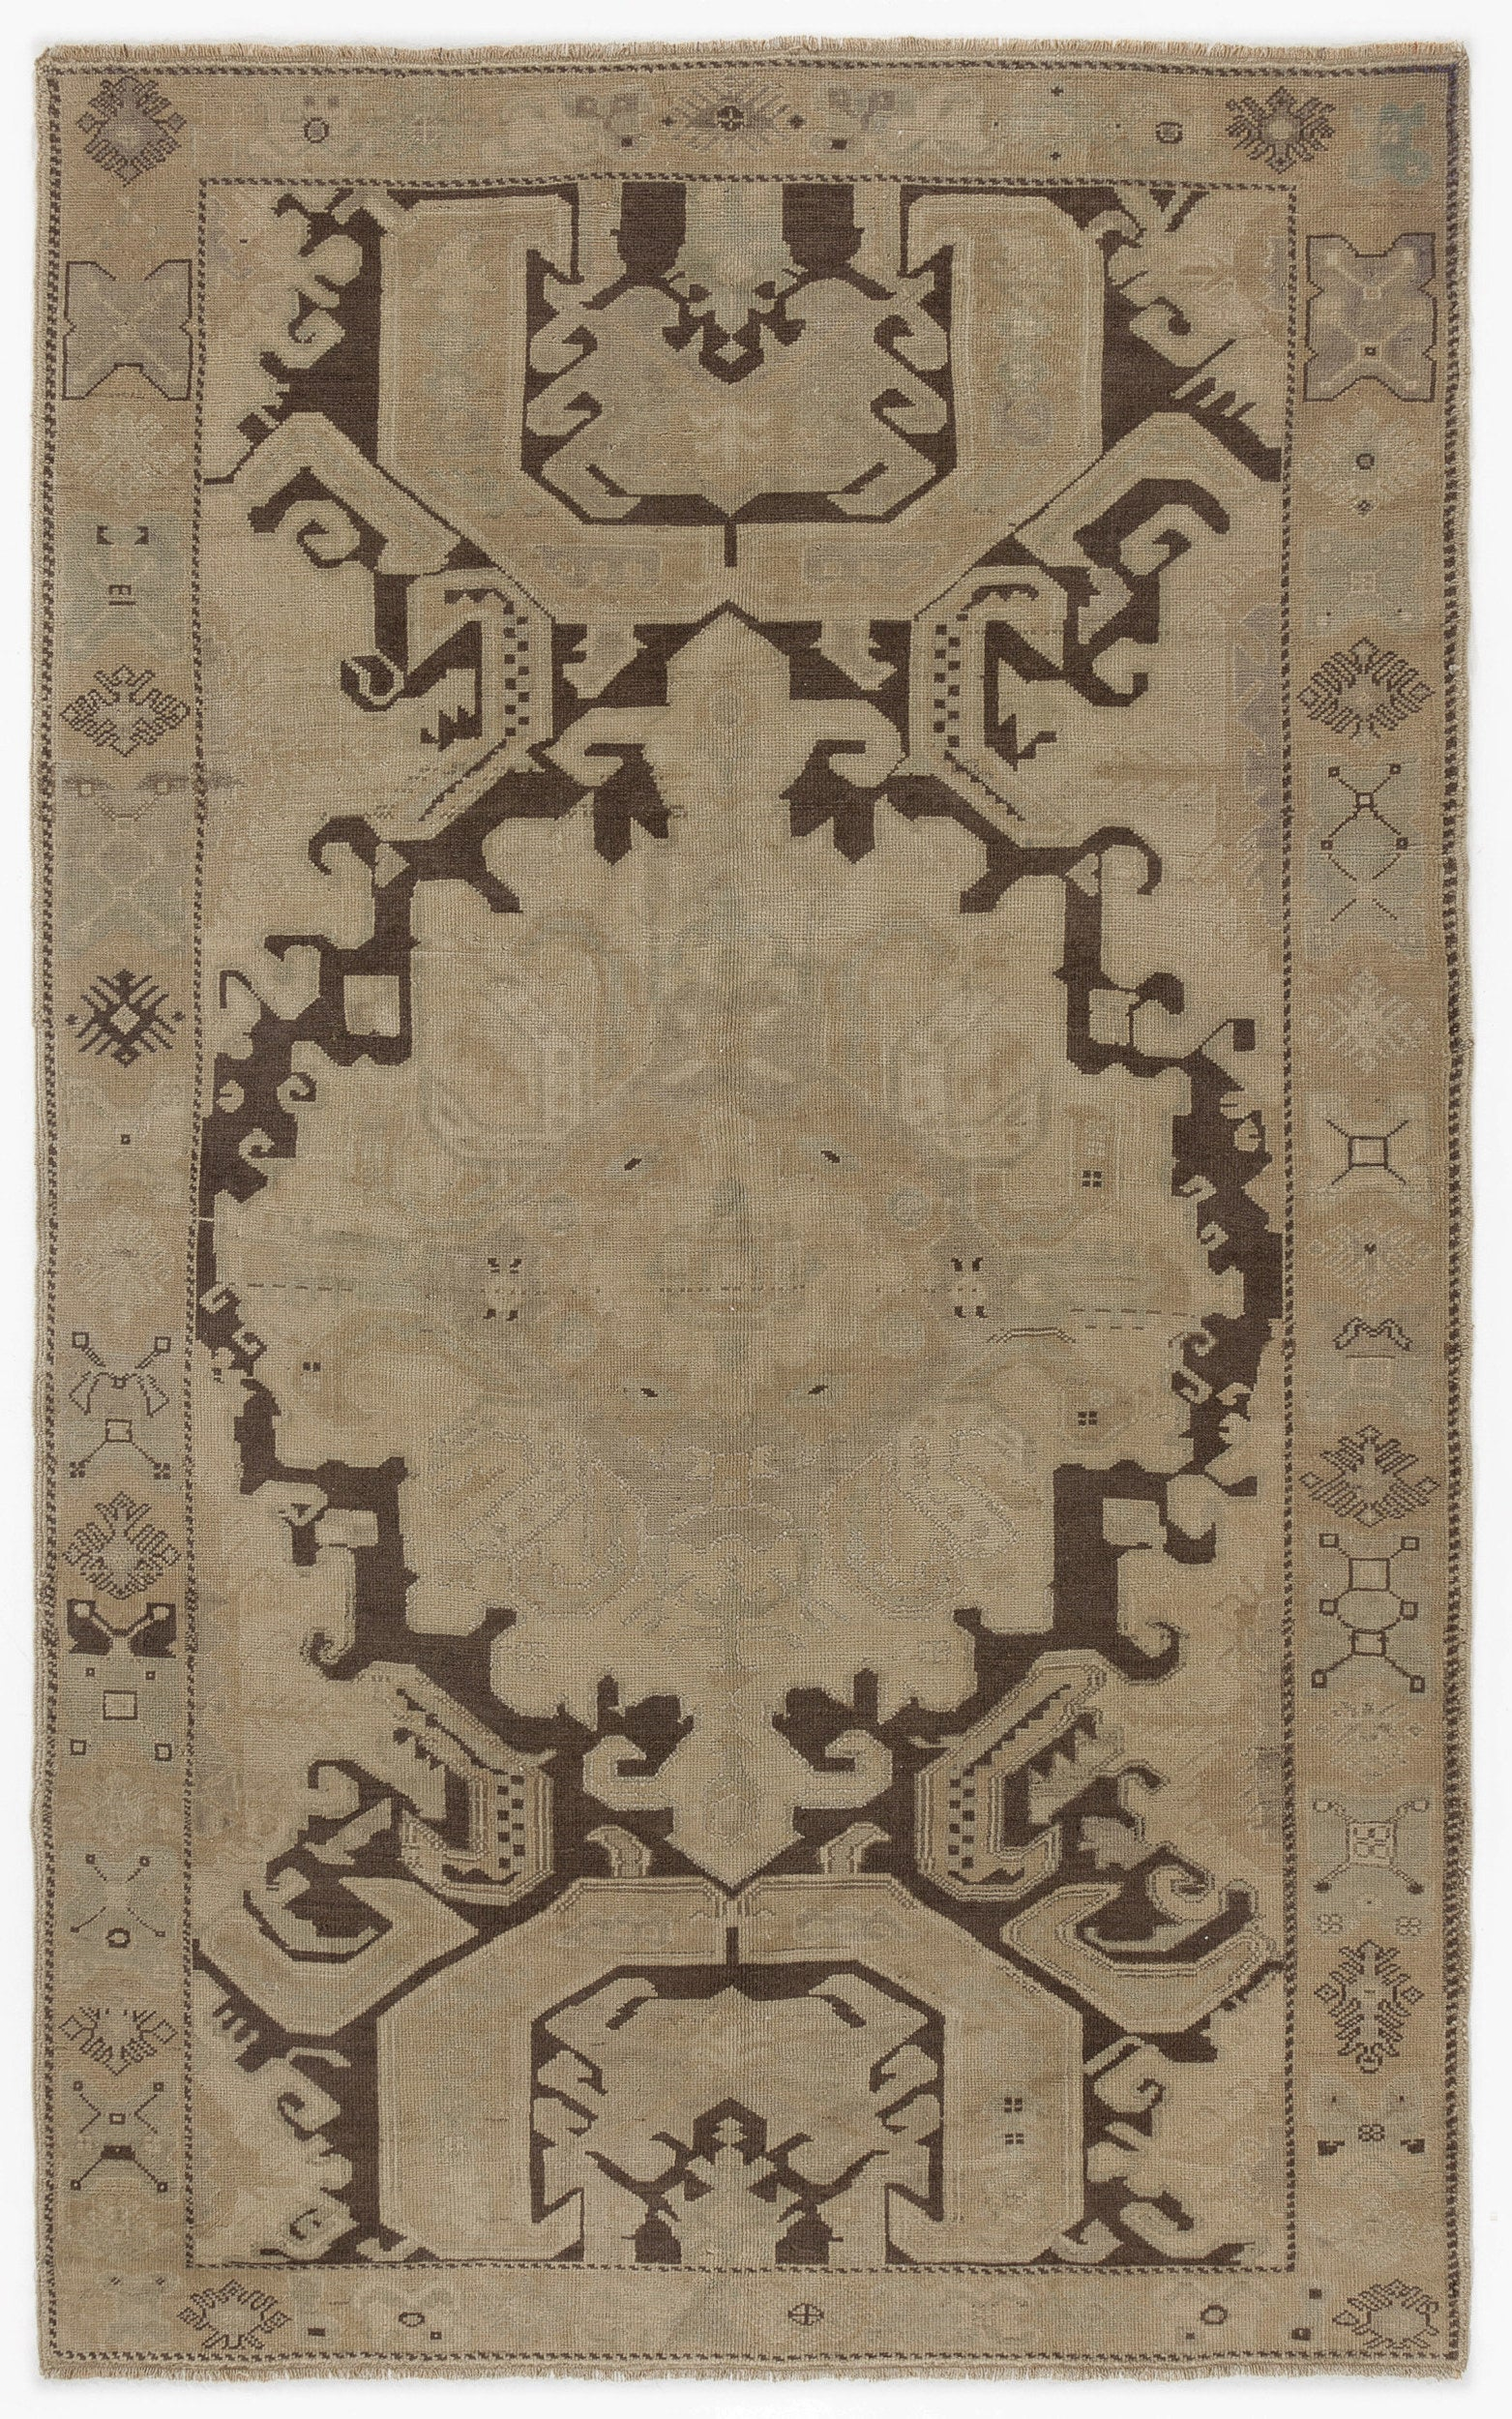 Beige Over Dyed Heritage Rug 5'5'' x 8'10'' ft 166 x 268 cm